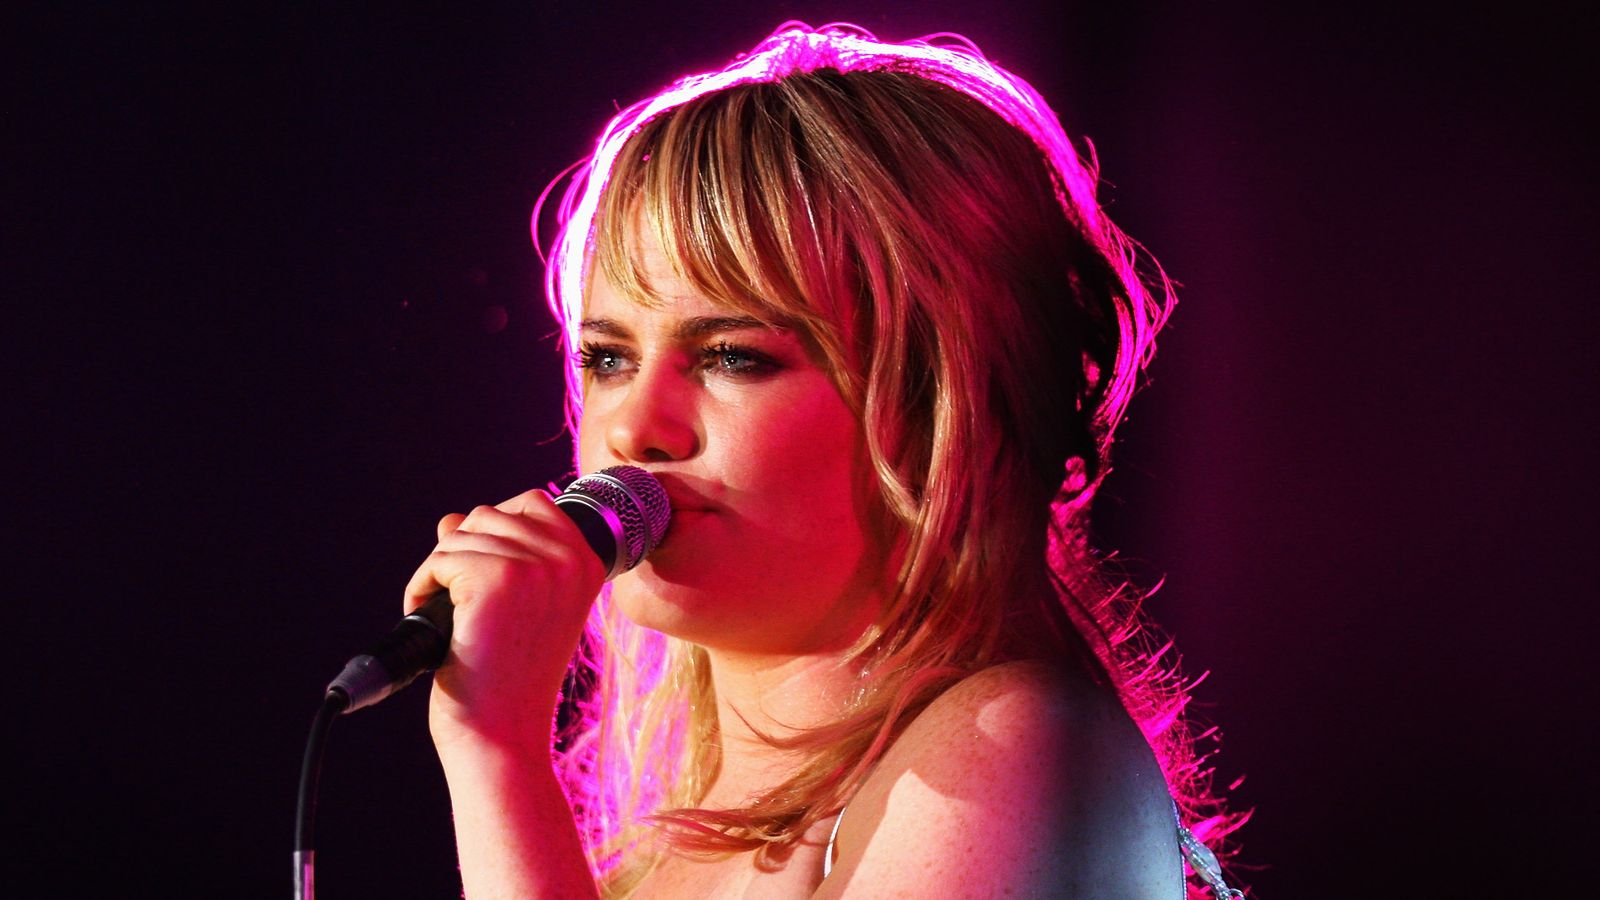 Singer Duffy reveals she was drugged and raped while being held captive